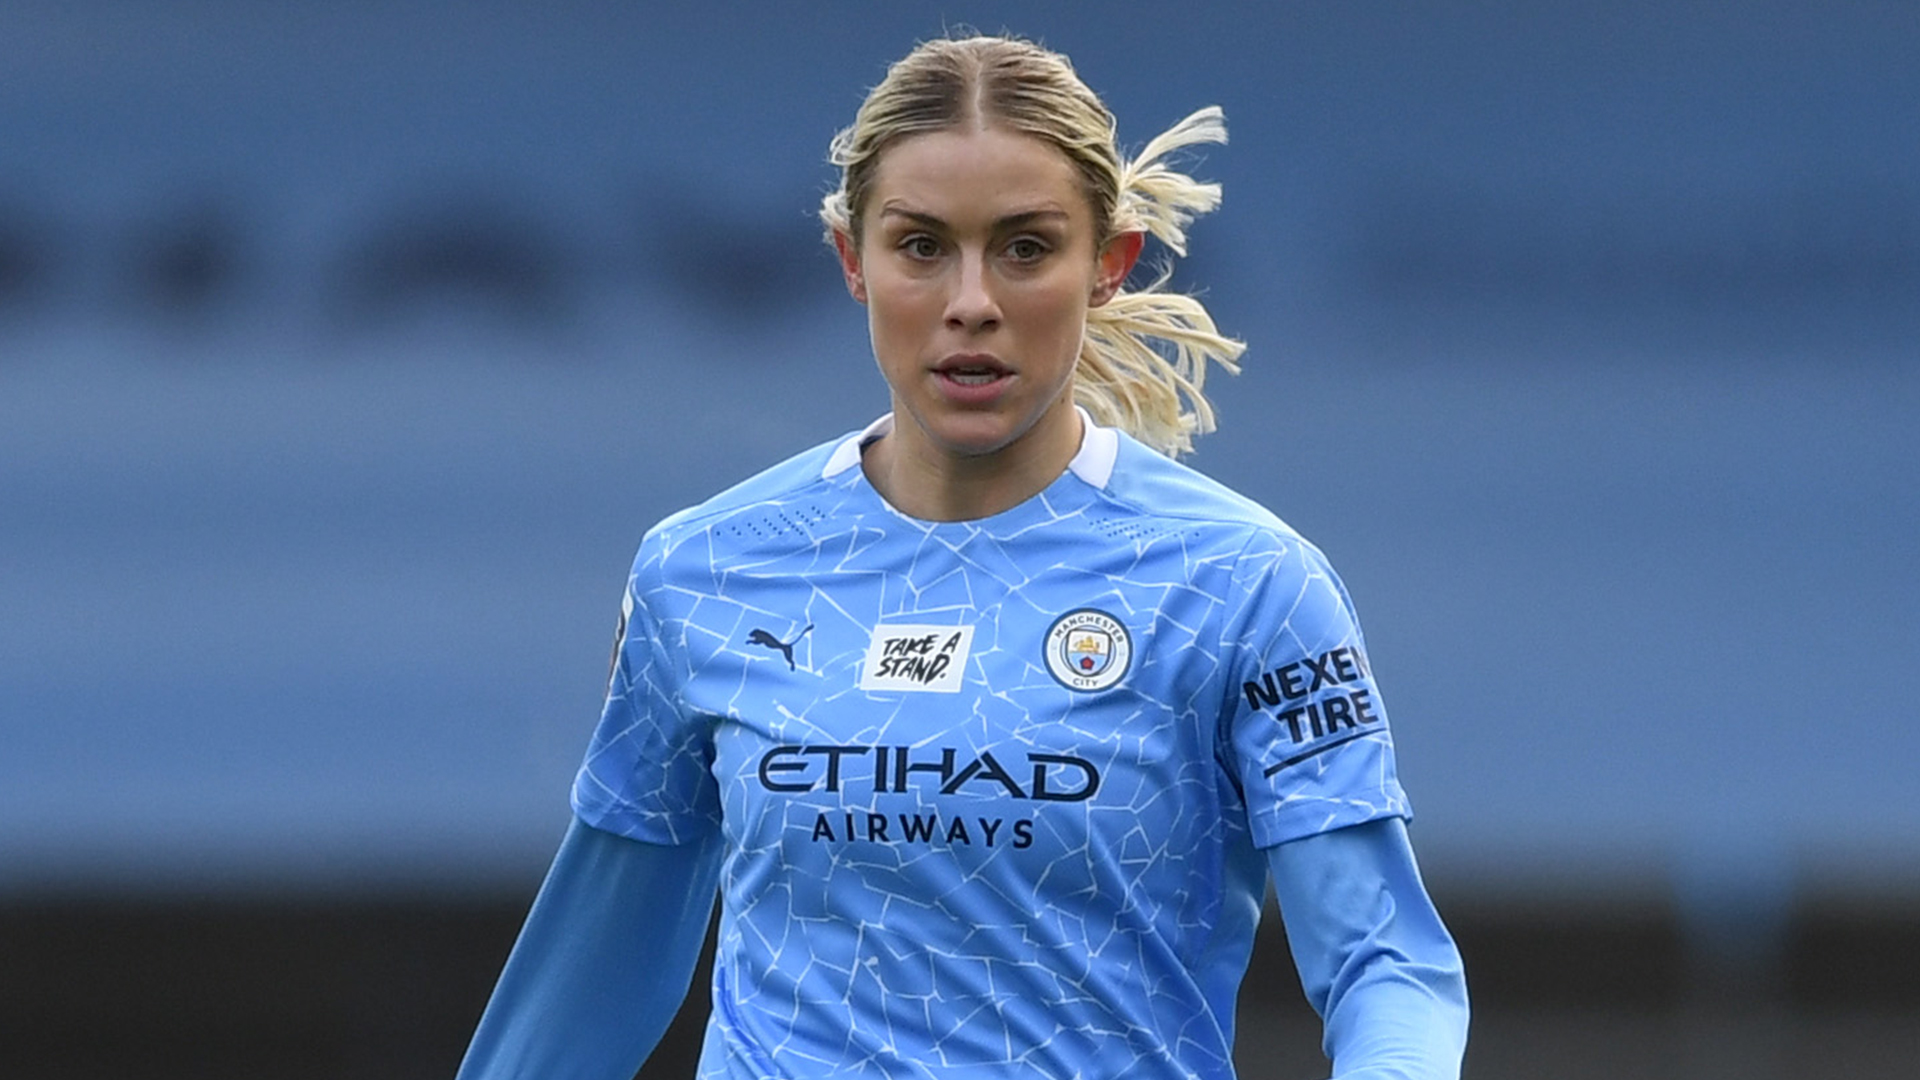 'I hope they stay!' – Dahlkemper wants USWNT team-mates Lavelle & Mewis to remain at Manchester City after joining them in England